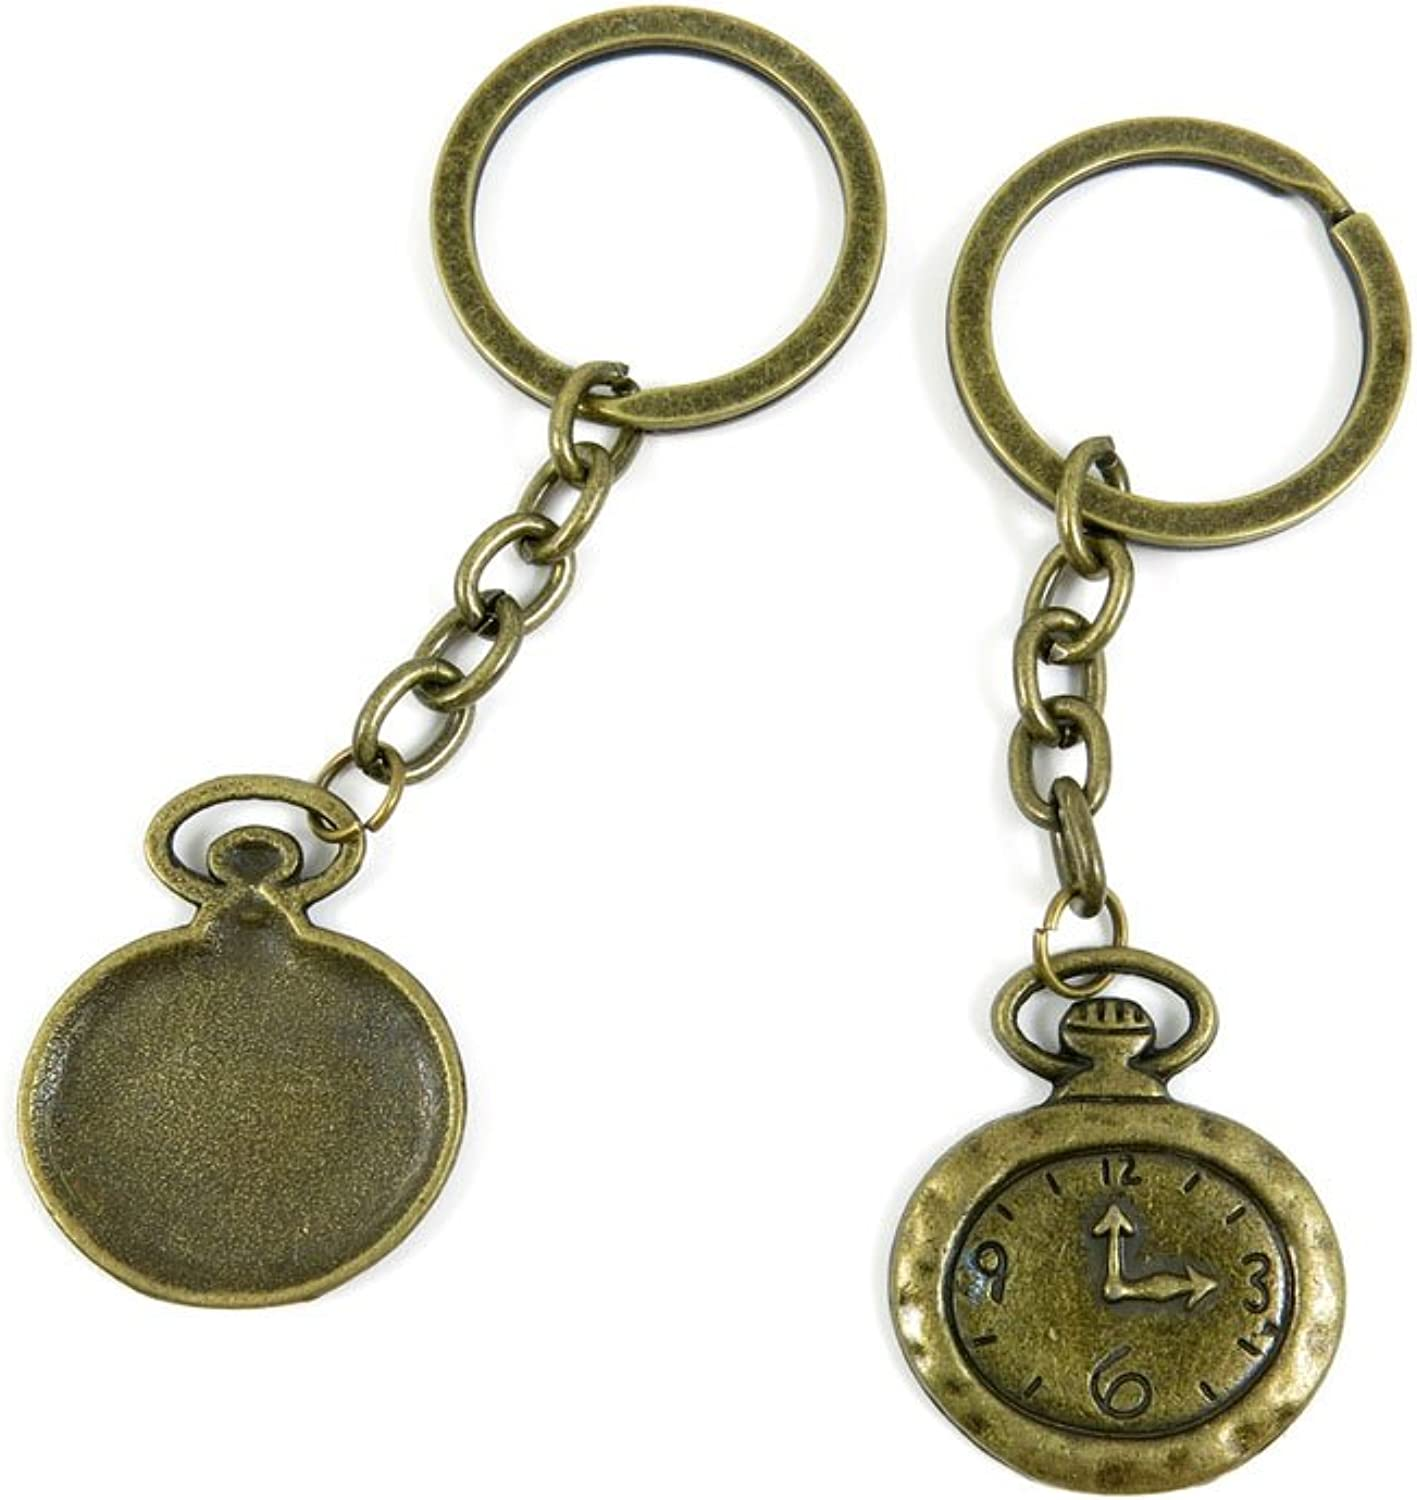 100 PCS Keyrings Keychains Key Ring Chains Tags Jewelry Findings Clasps Buckles Supplies S2MB9 Pocket Watch